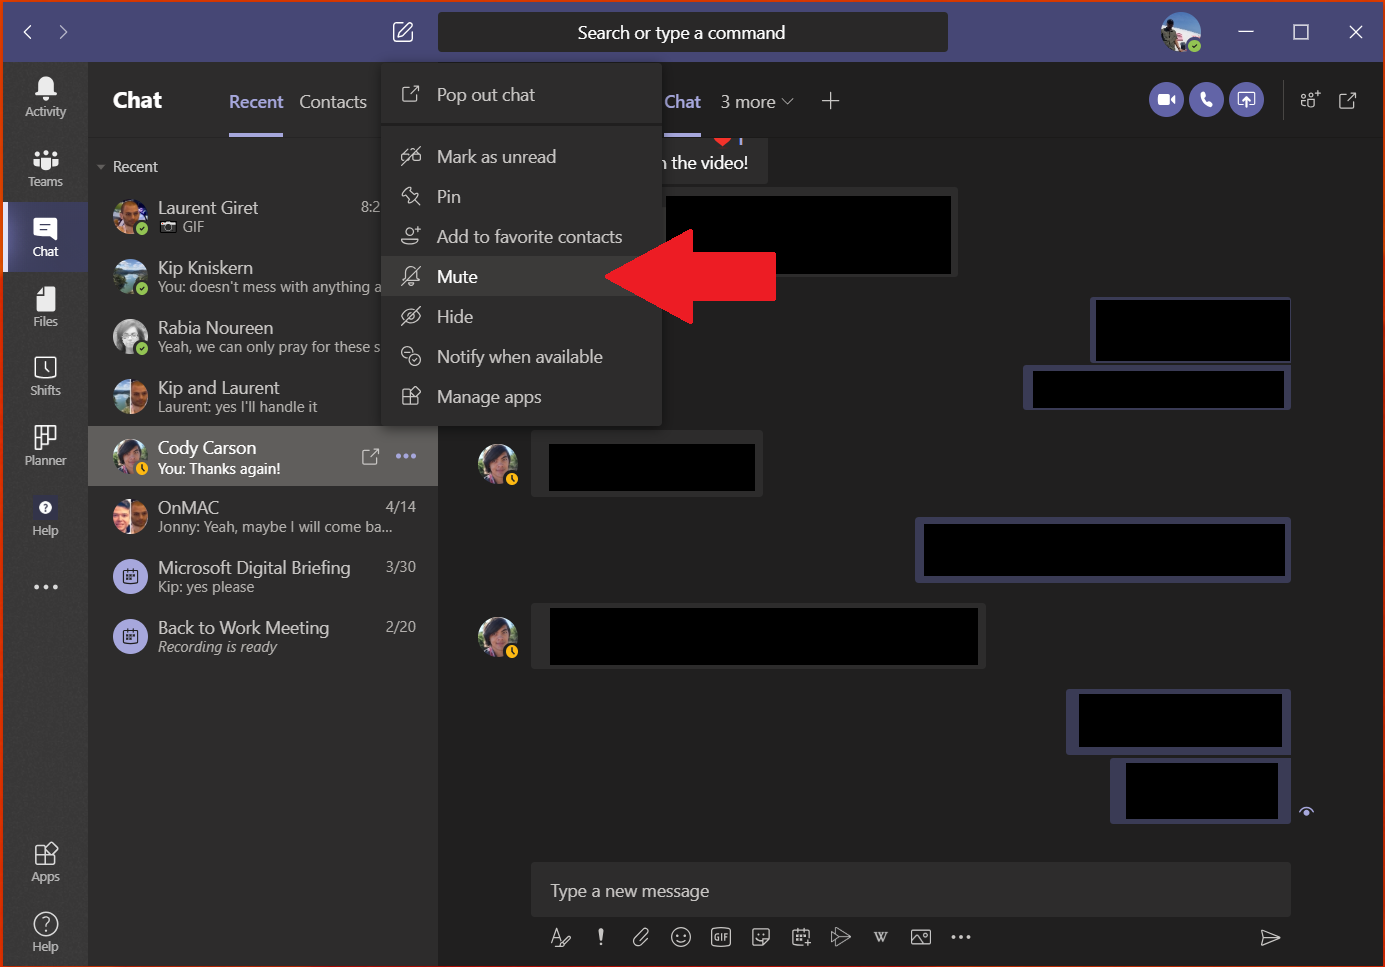 How to delete a chat in microsoft teams - onmsft. Com - june 9, 2020